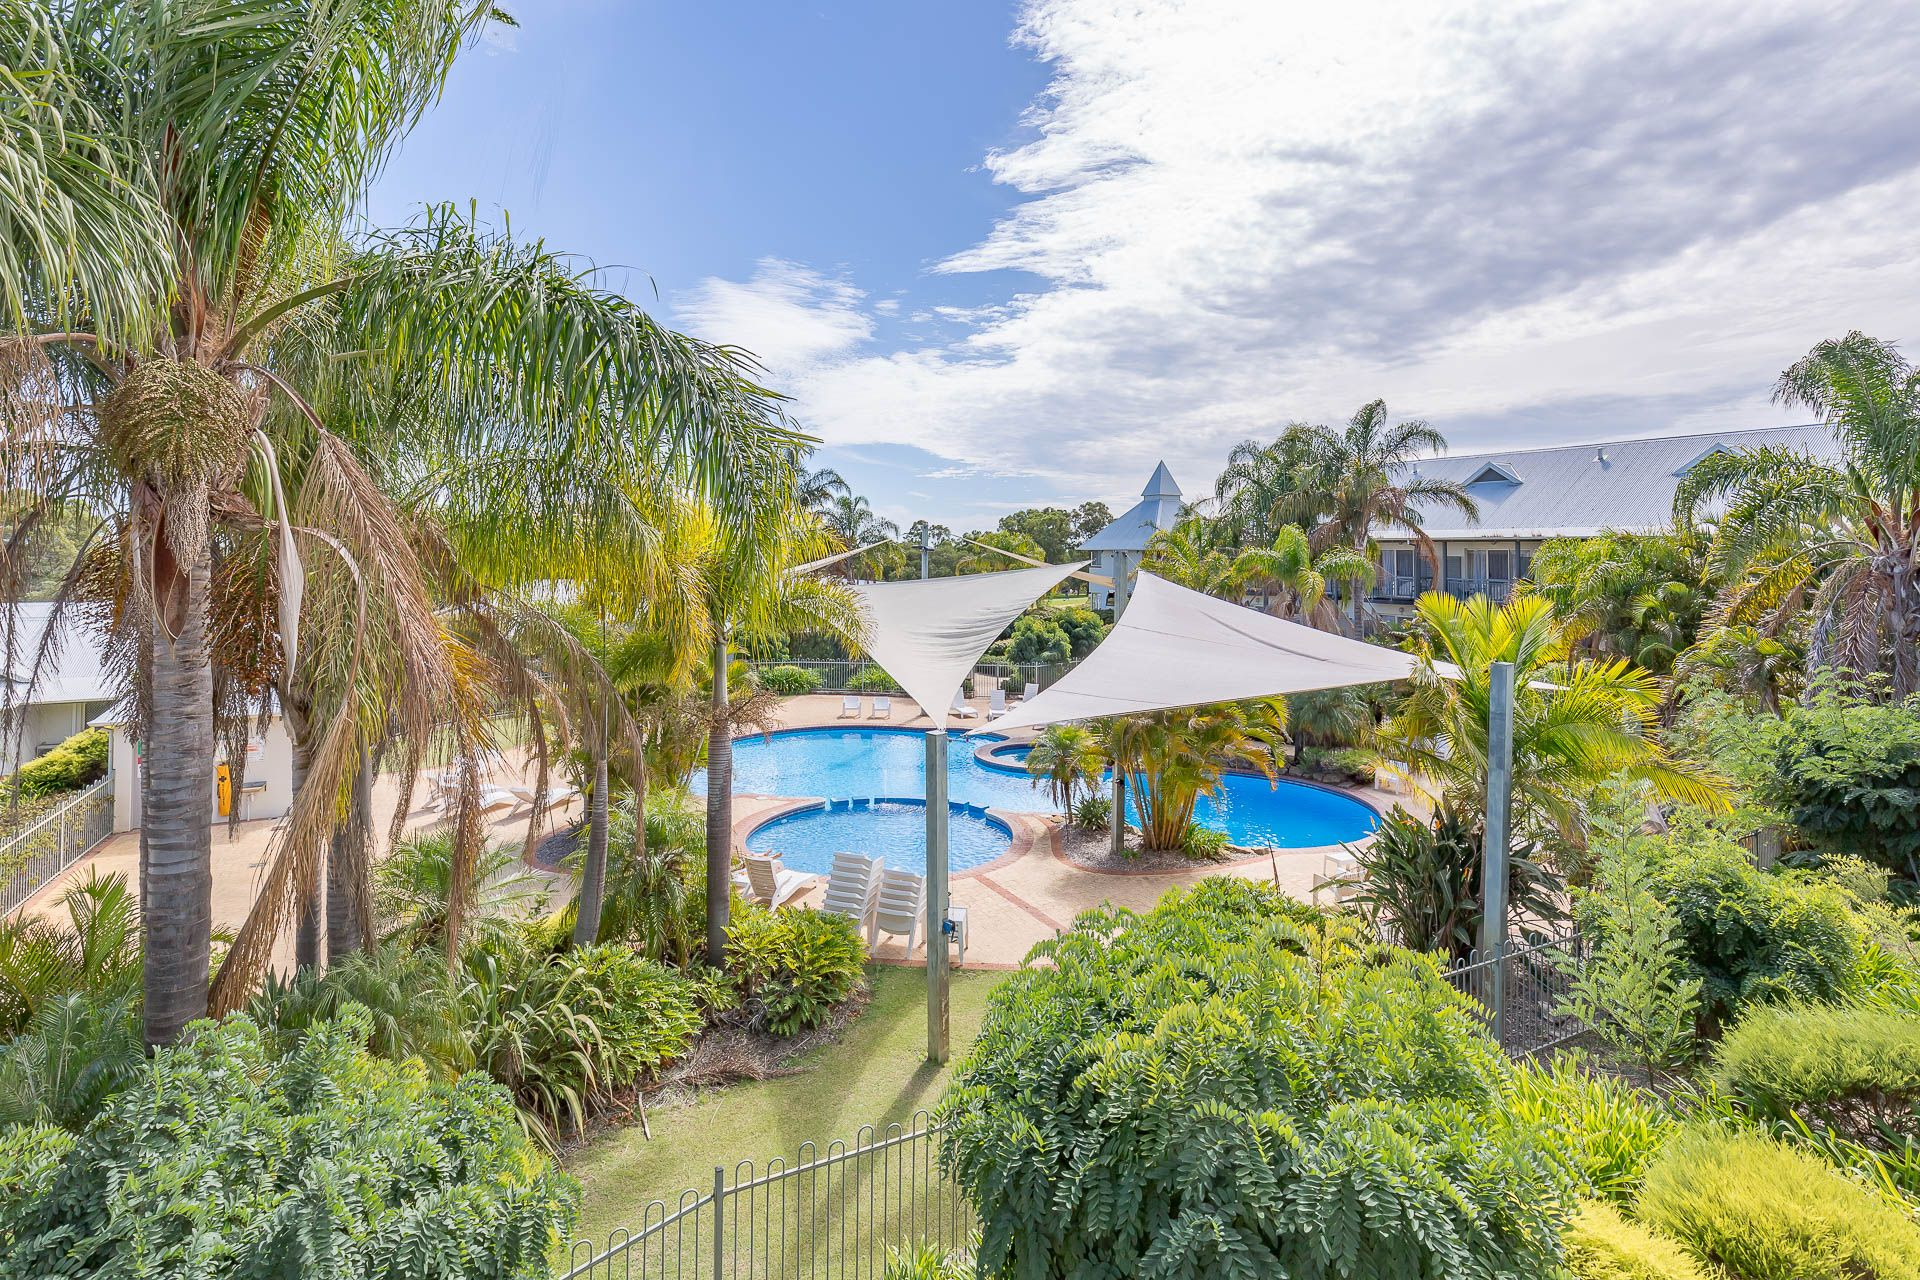 22/105 Old Coast Road, Pelican Point